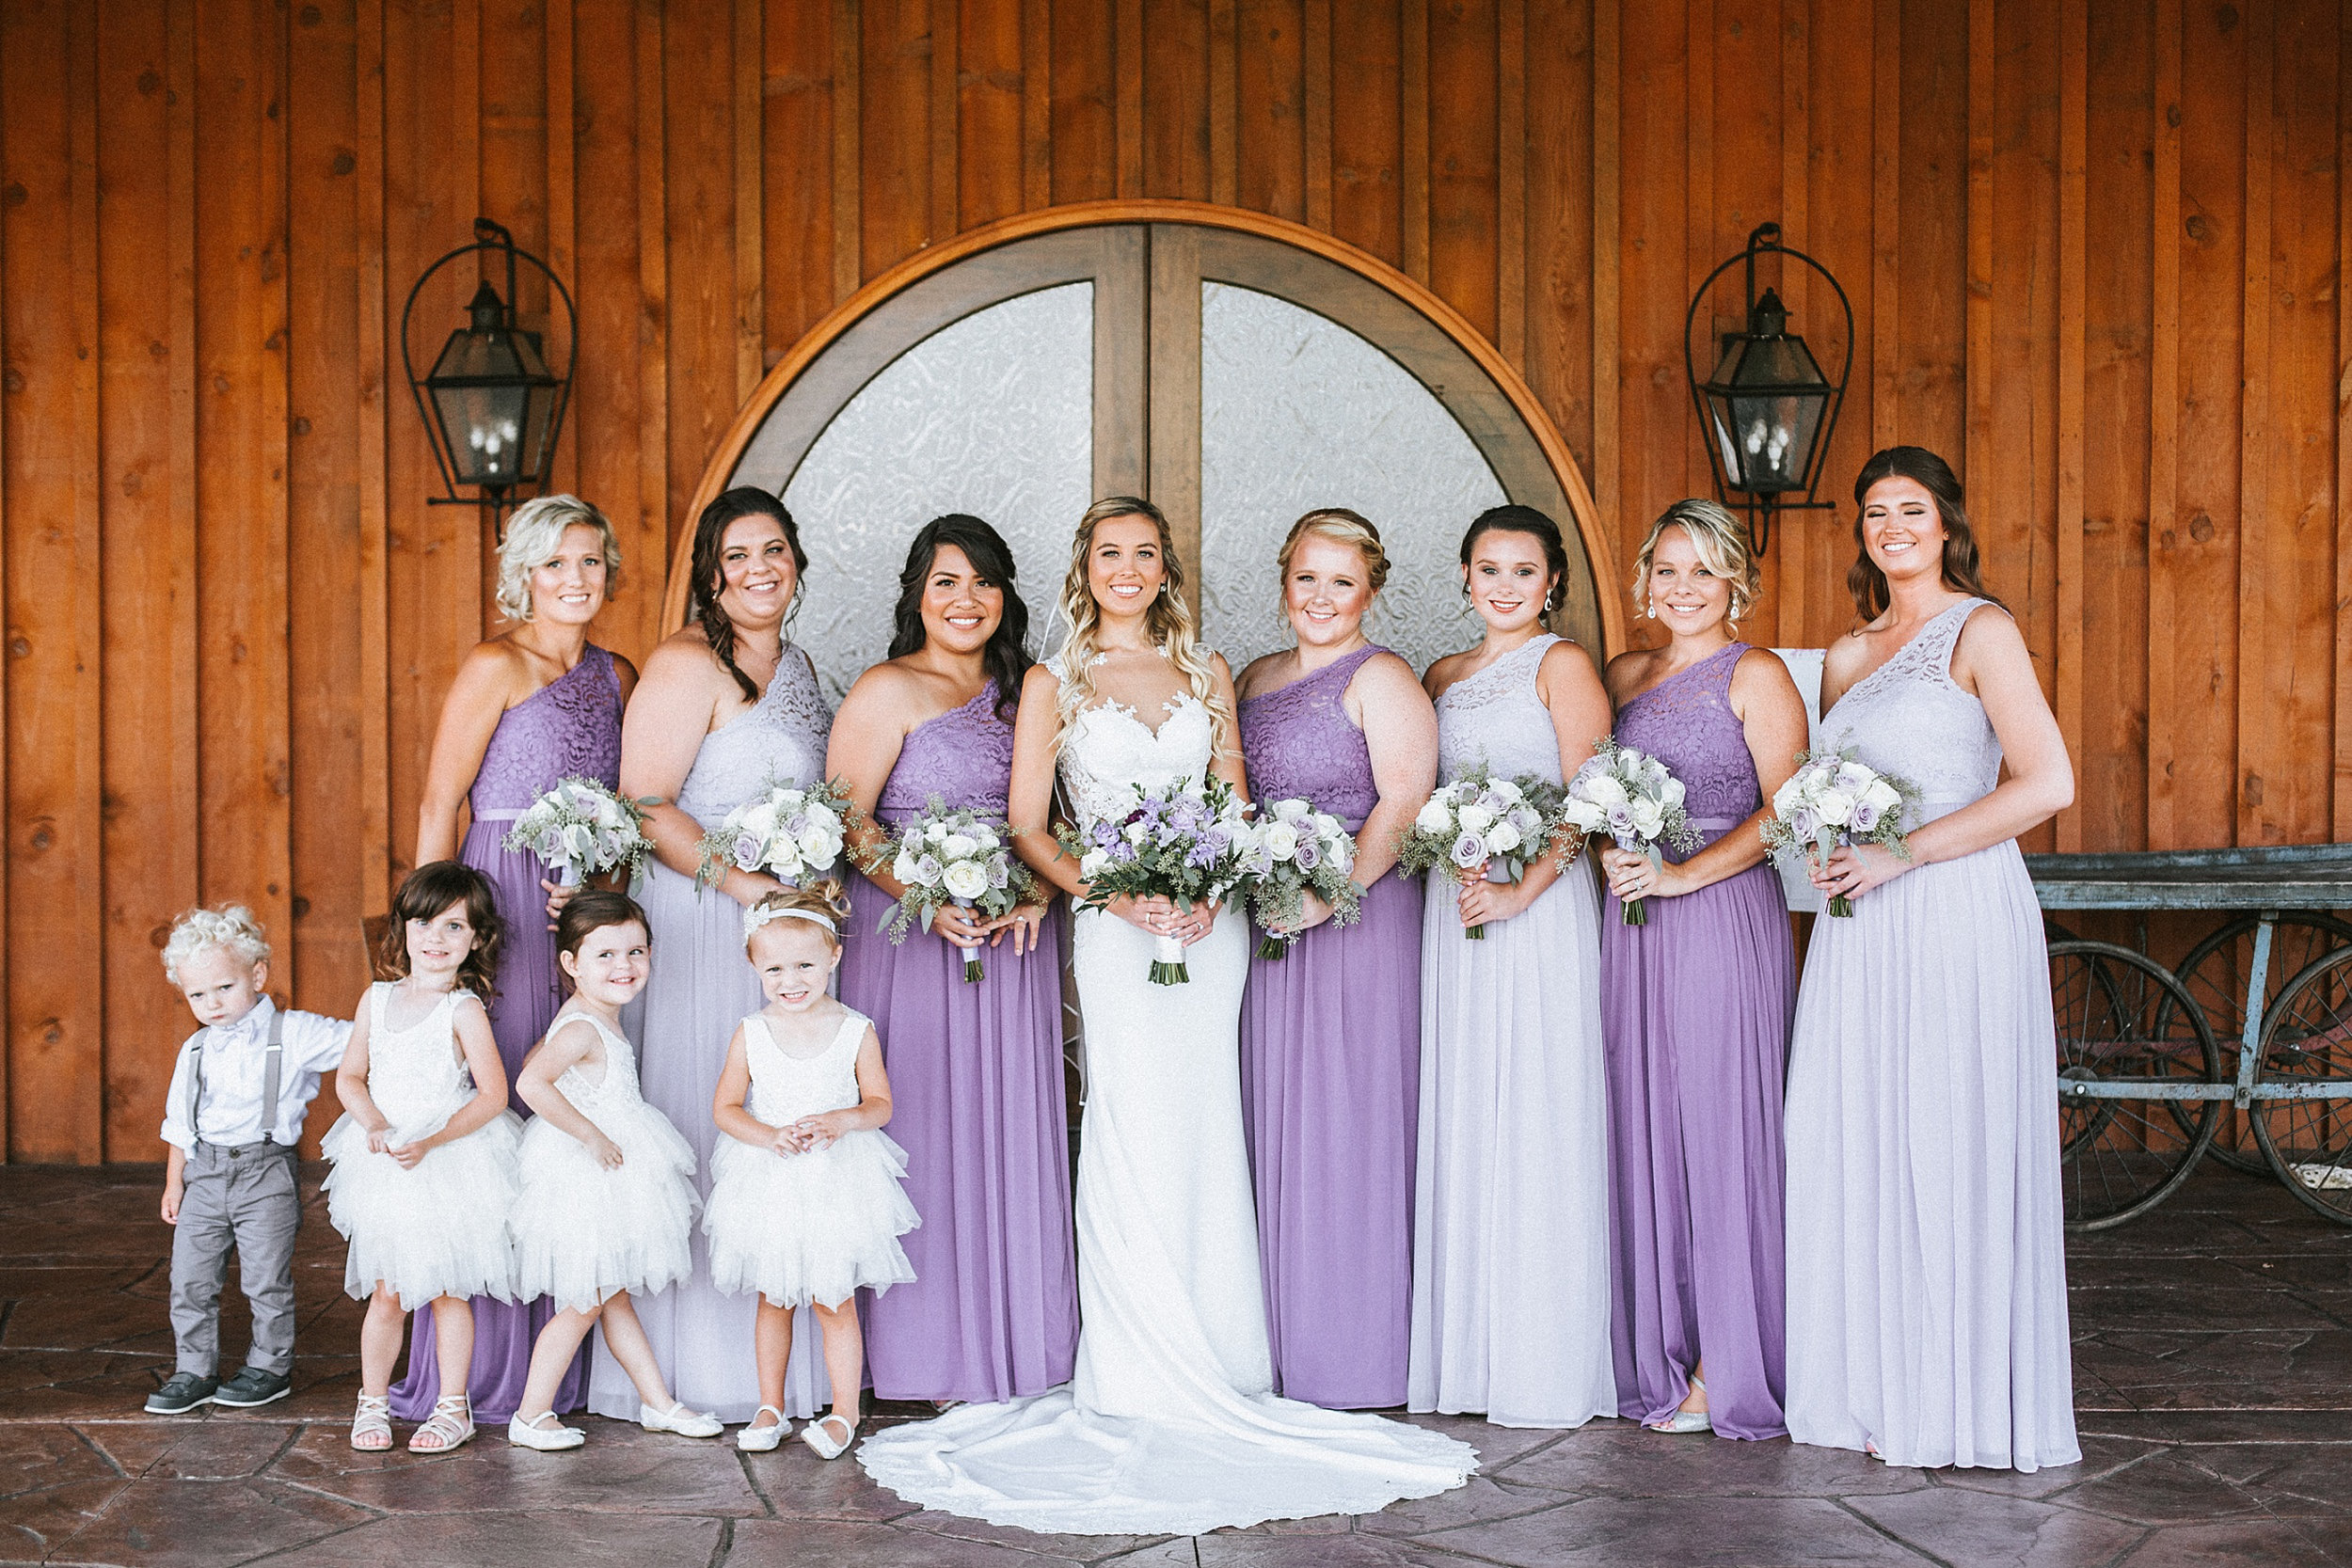 Brooke Townsend Photography - Cincinnati Wedding Photographer (40 of 230).jpg